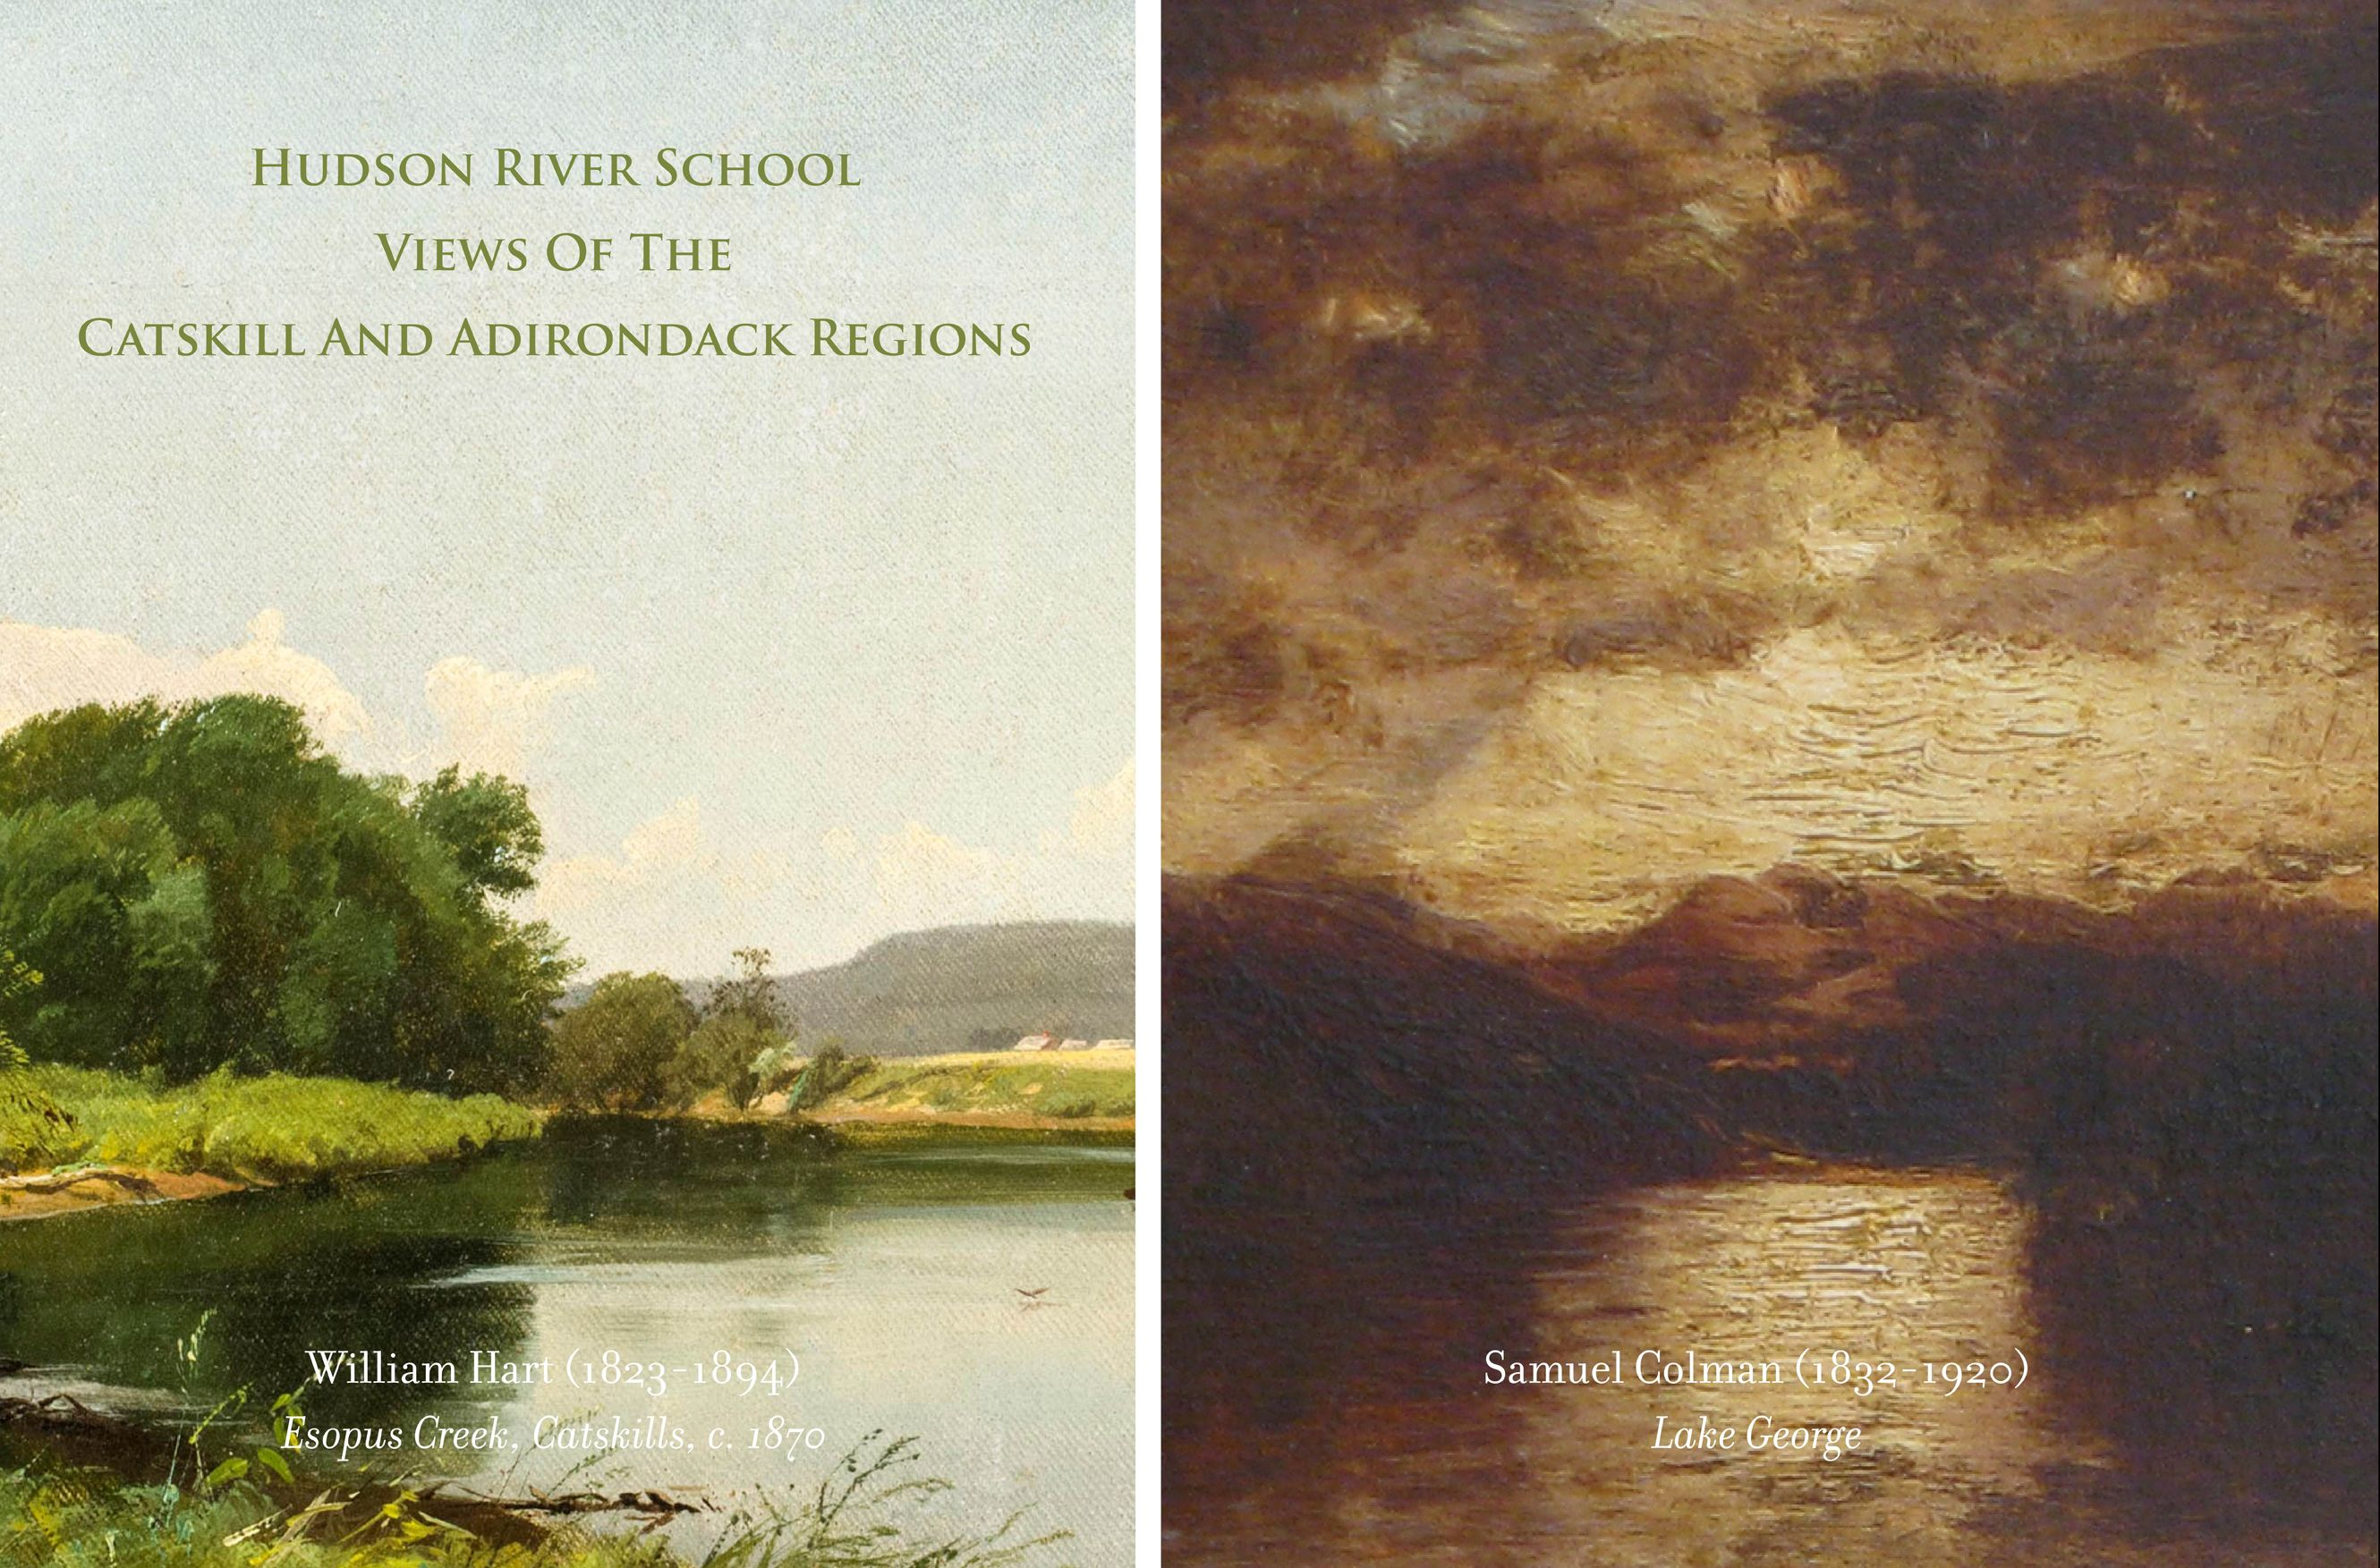 Hudson River School Views of the Catskill and Adirondack Regions